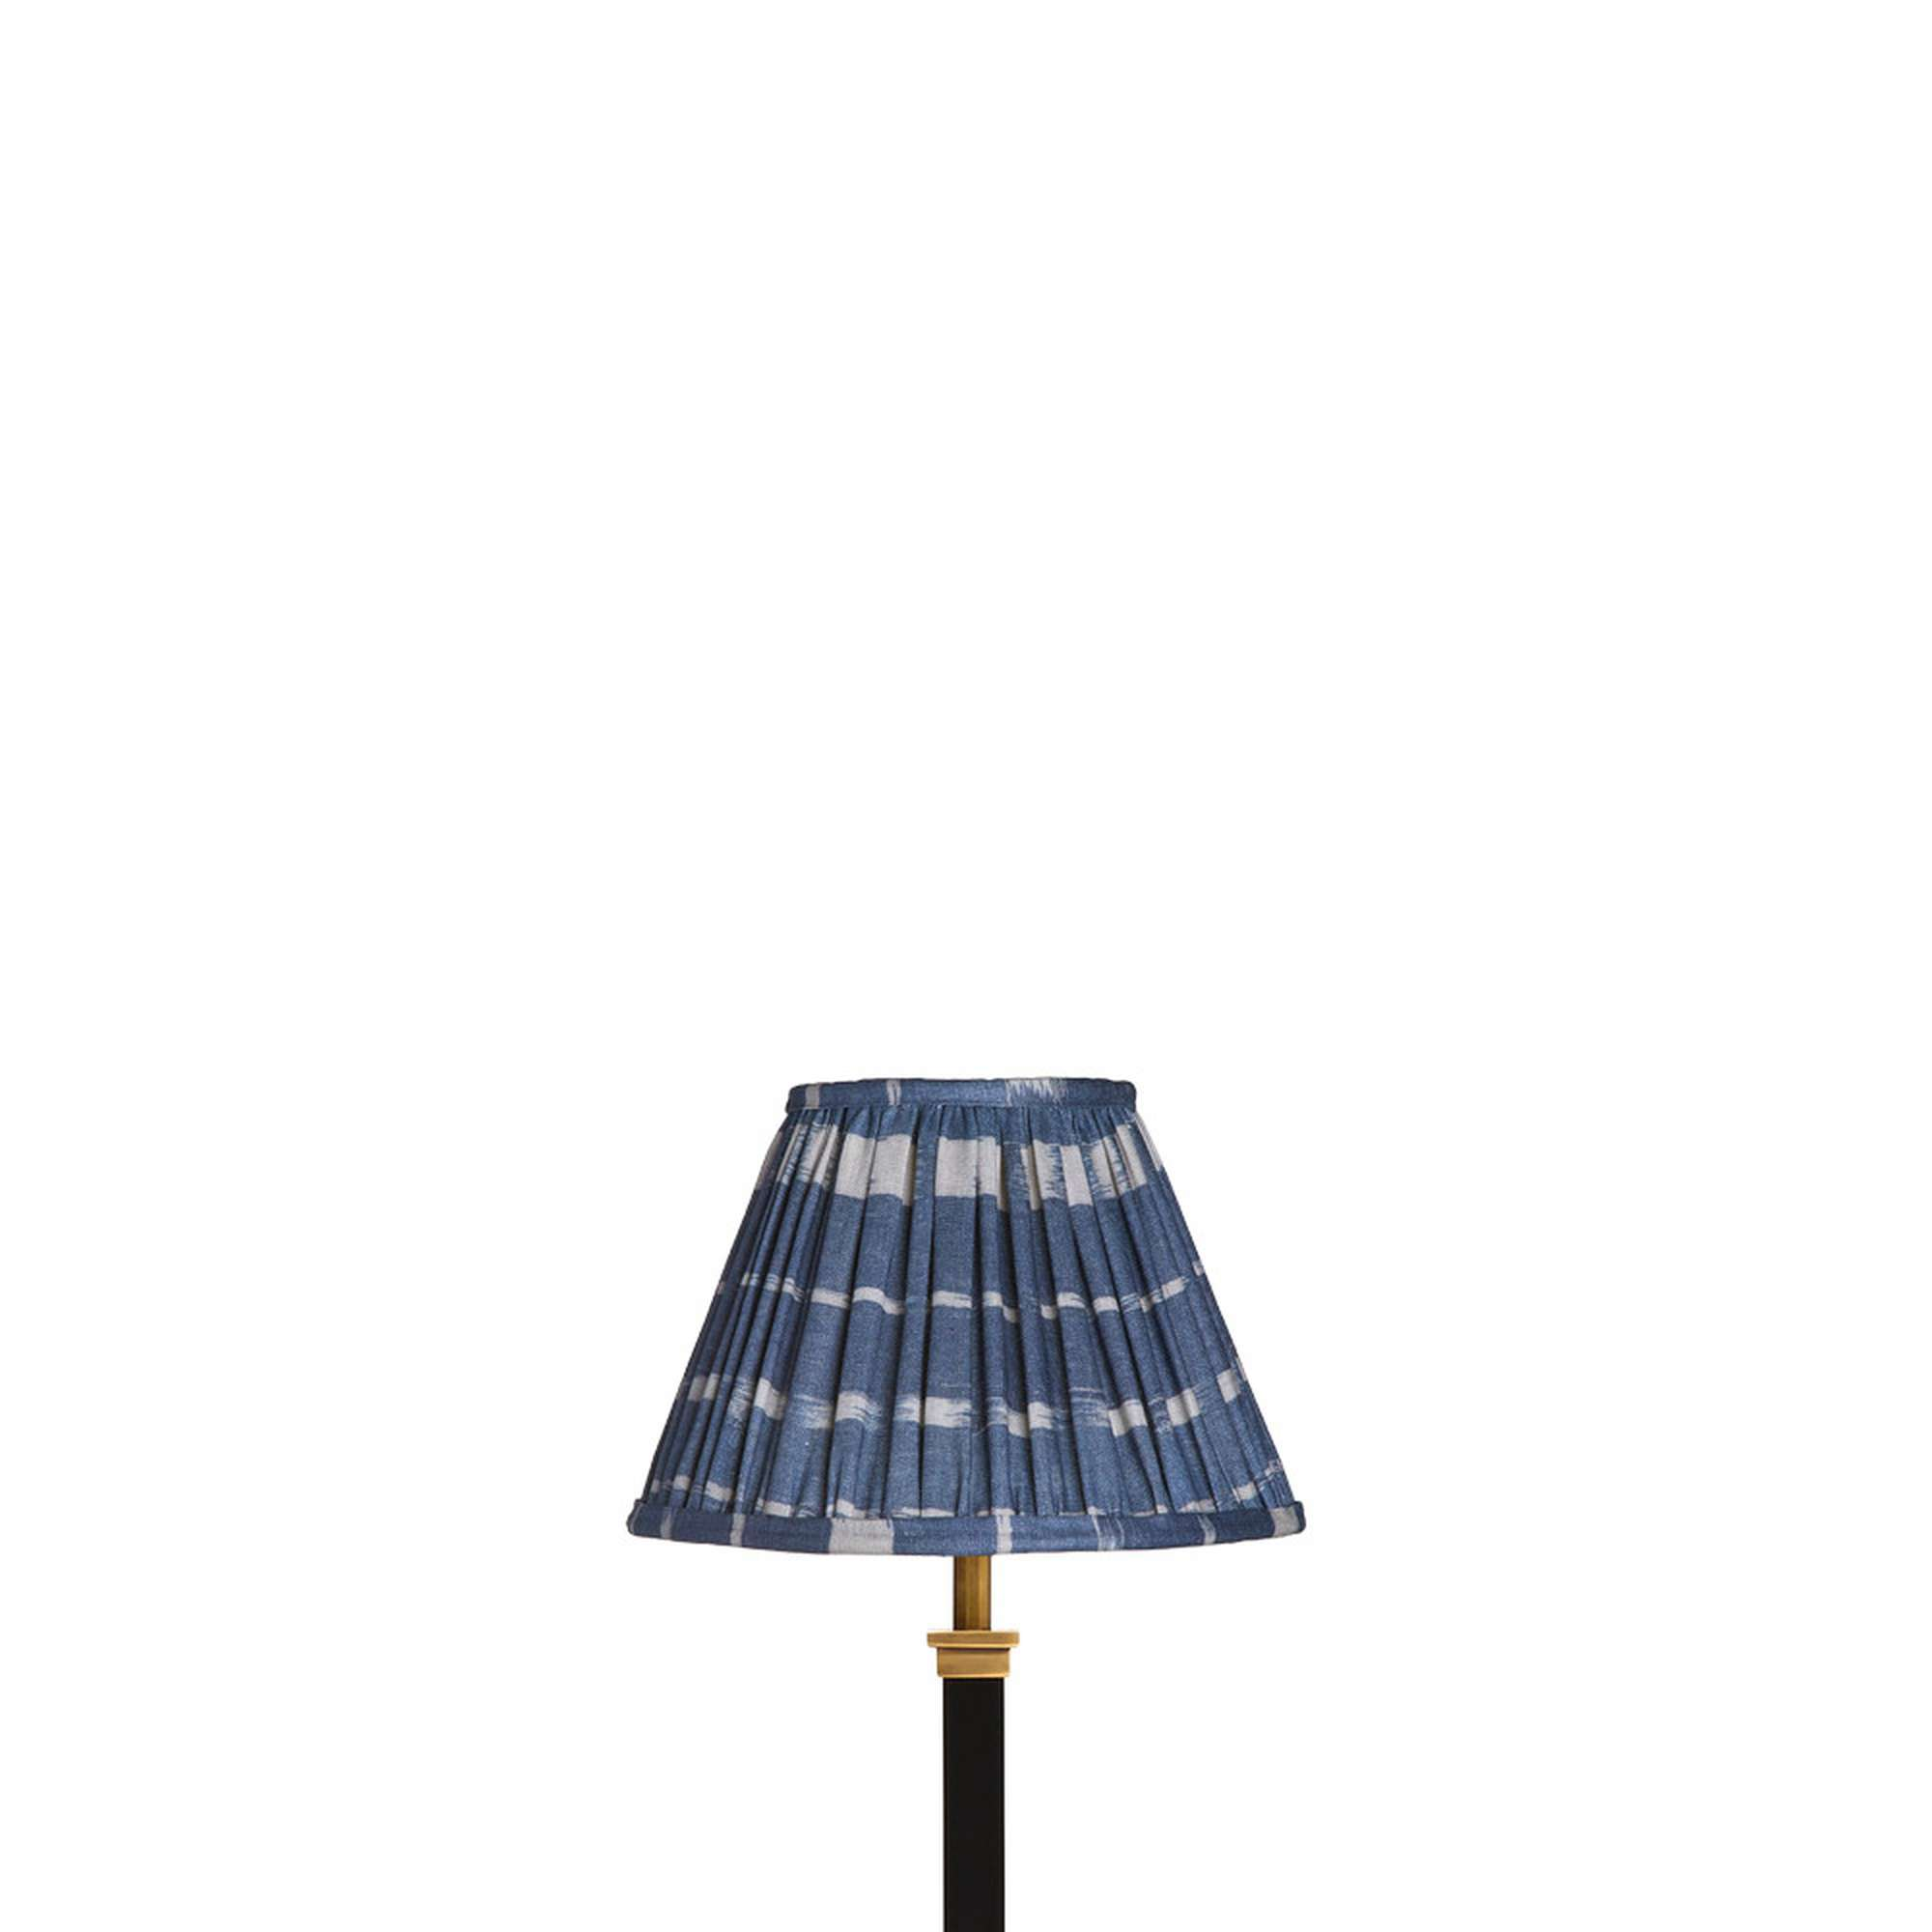 20cm empire gathered lampshade in blue printed denim in